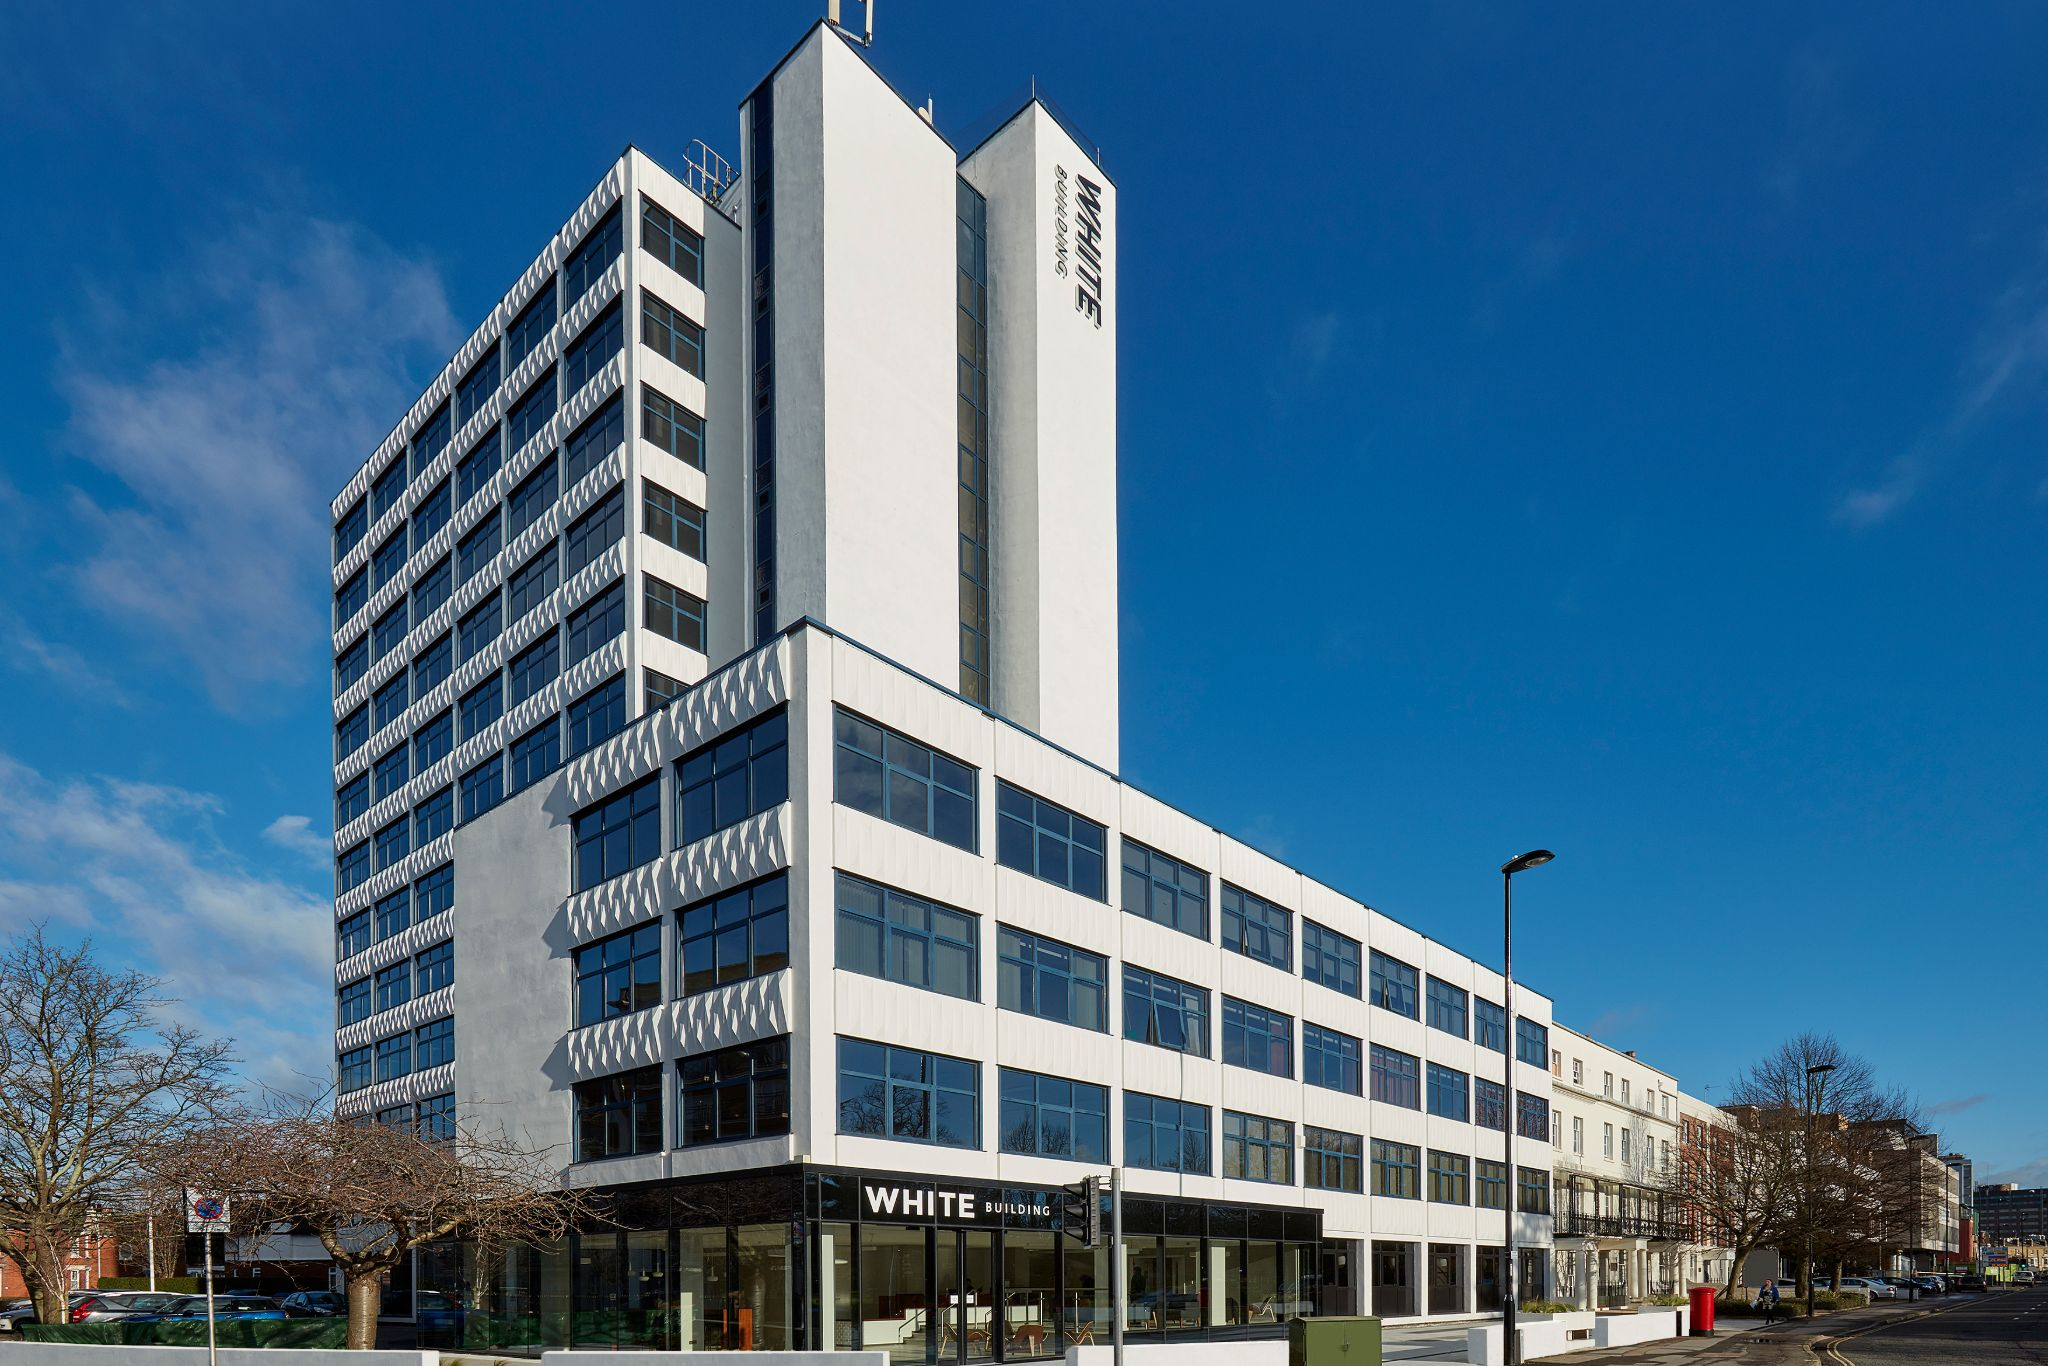 White Building -1-4 Cumberland Place, SO15 - Southampton